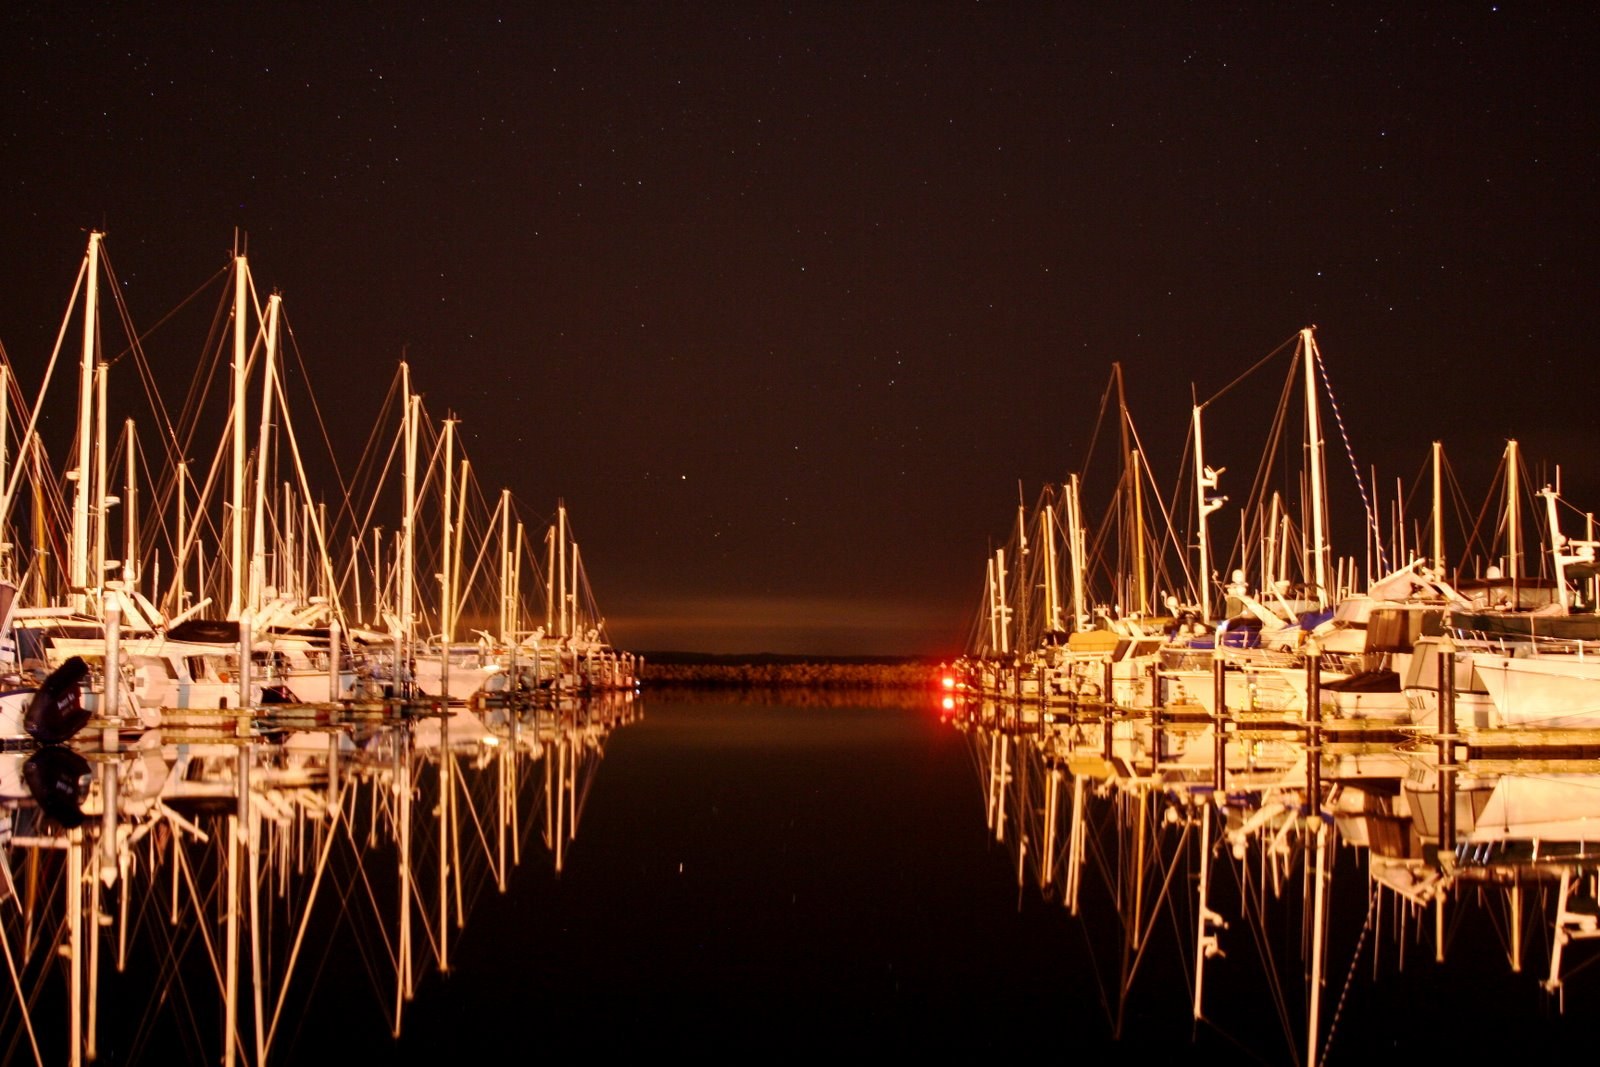 shilshole bay marina at night